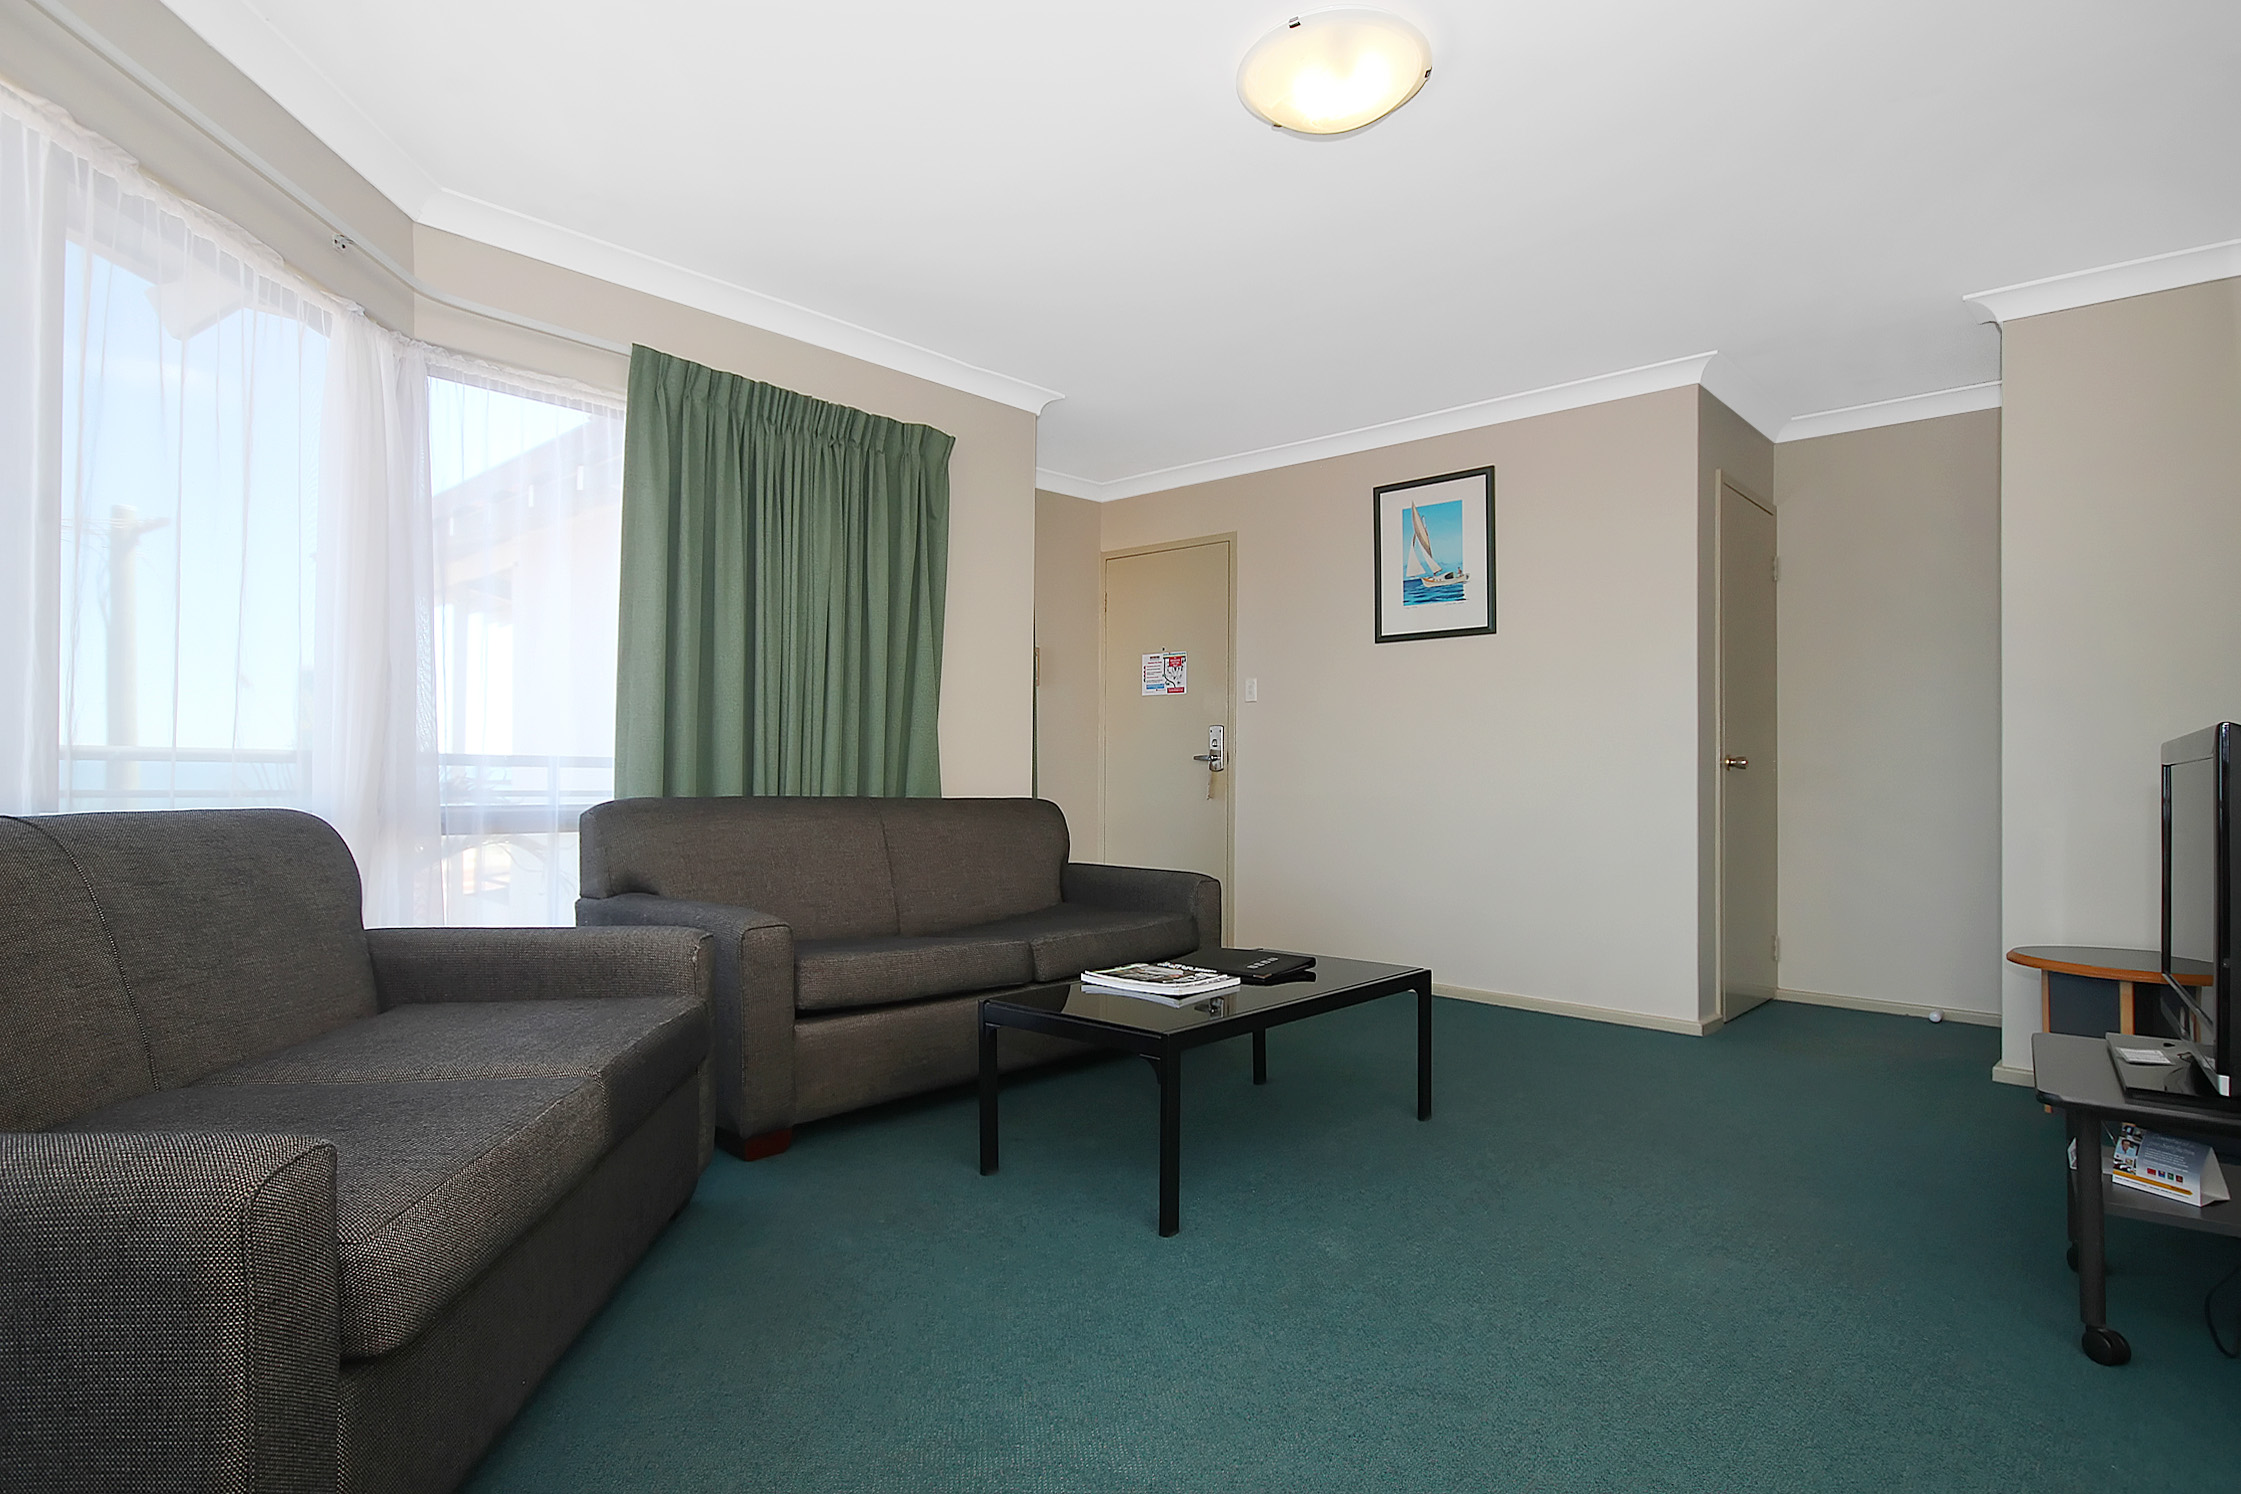 80 rooms and apartments, a short walk to Hillarys Harbour and 76 steps to the beach. Pool, Spa and BBq area with restaurant. This  two-bedroom serviced apartment is 60 sq.m ,  and can sleep 3 people m